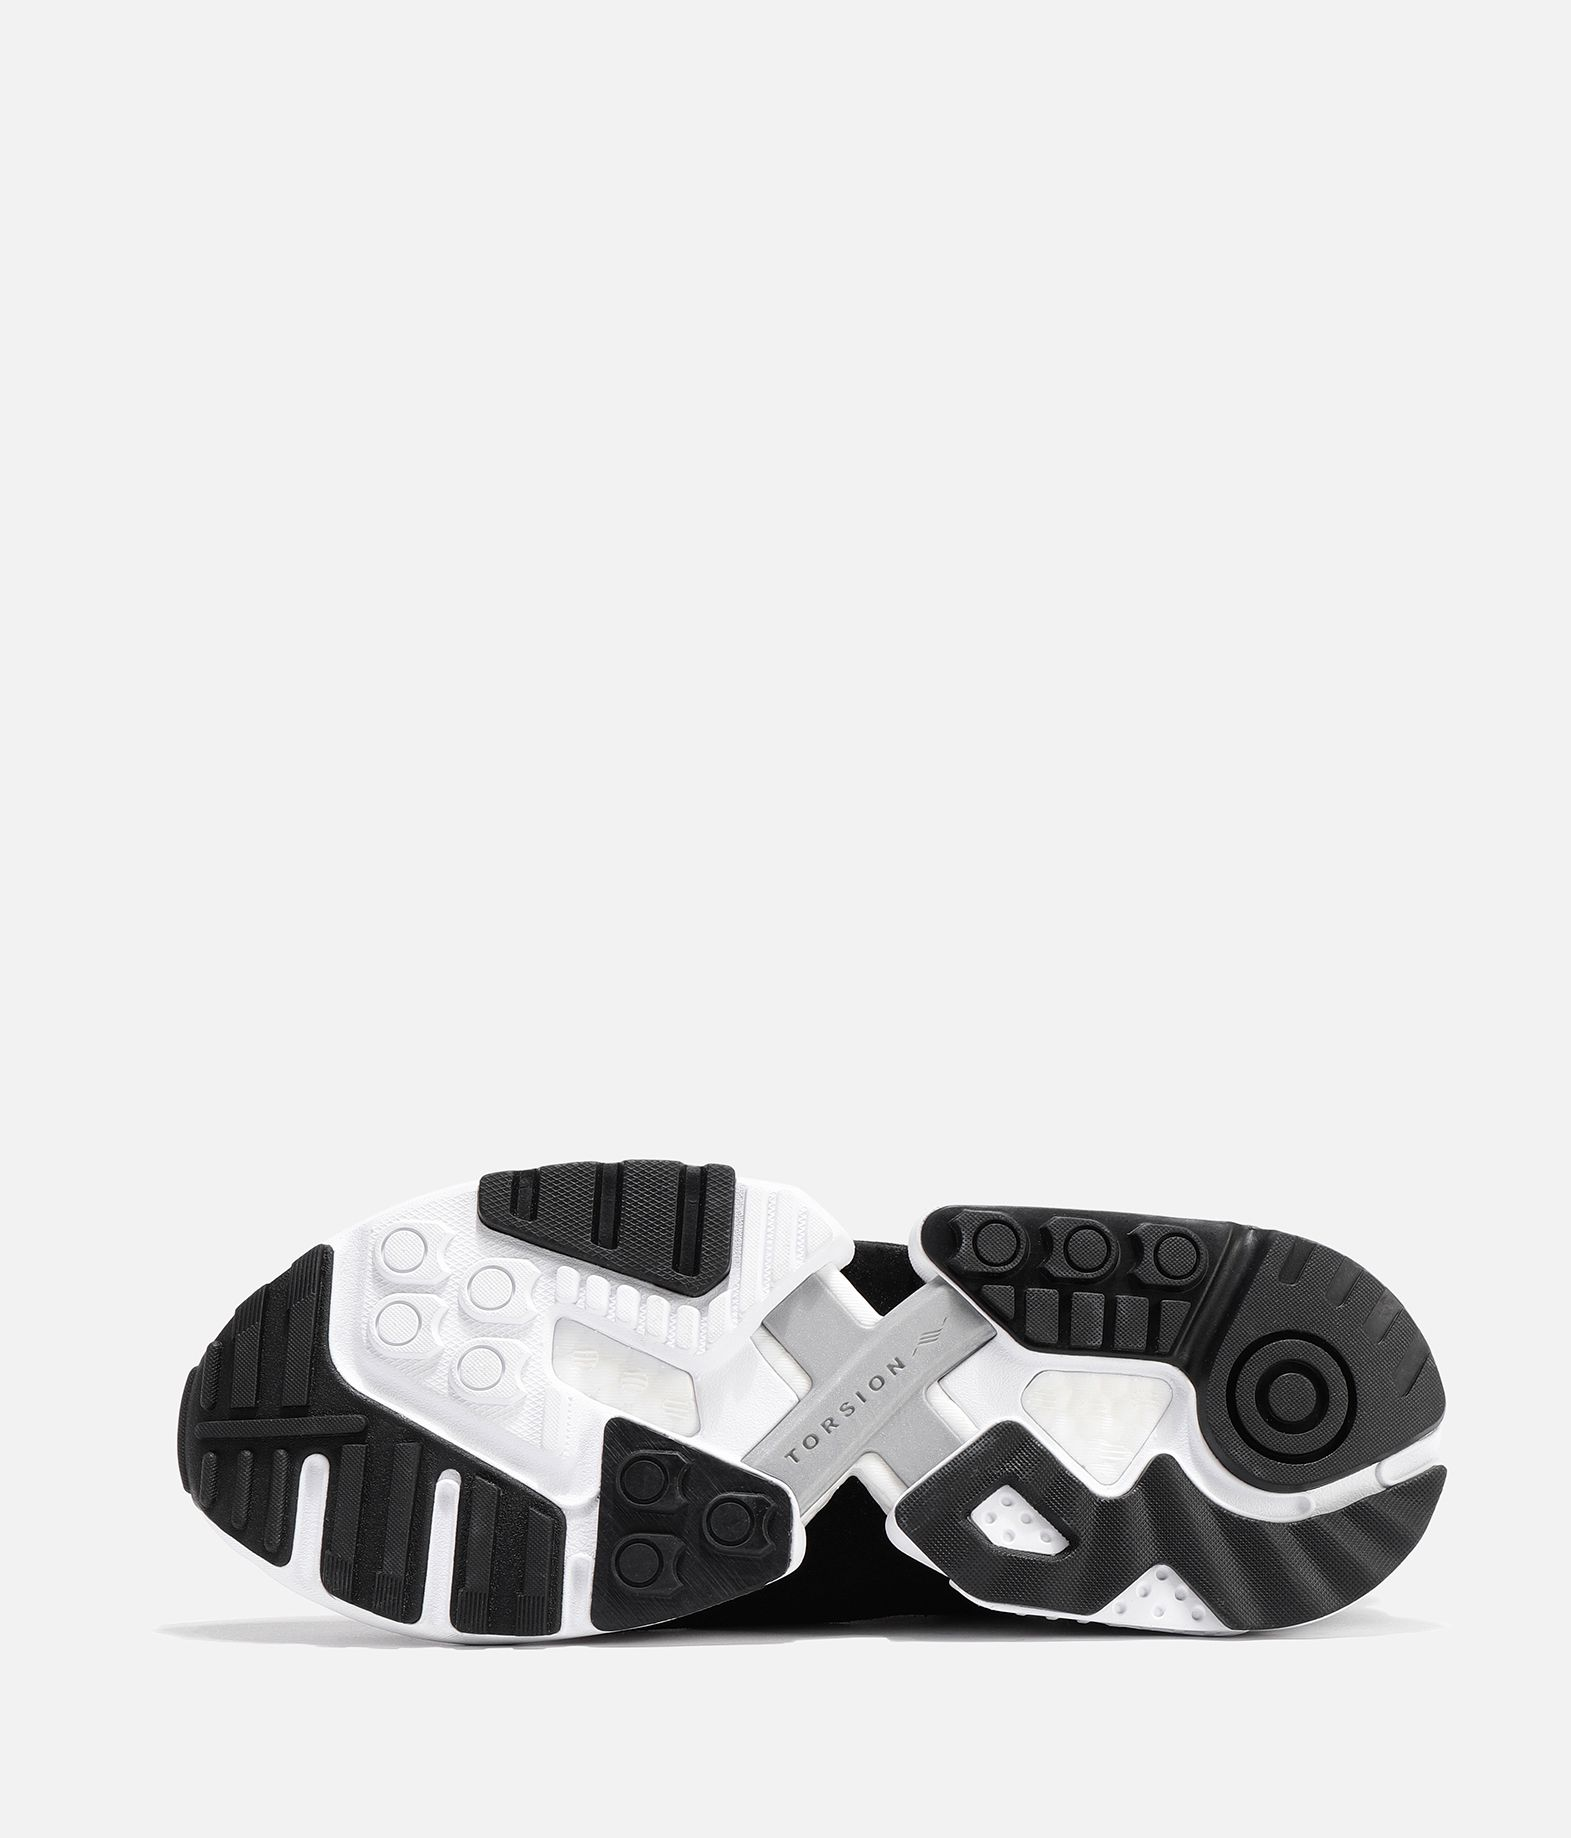 Y-3 Y-3 ZX Torsion Sneakers E a